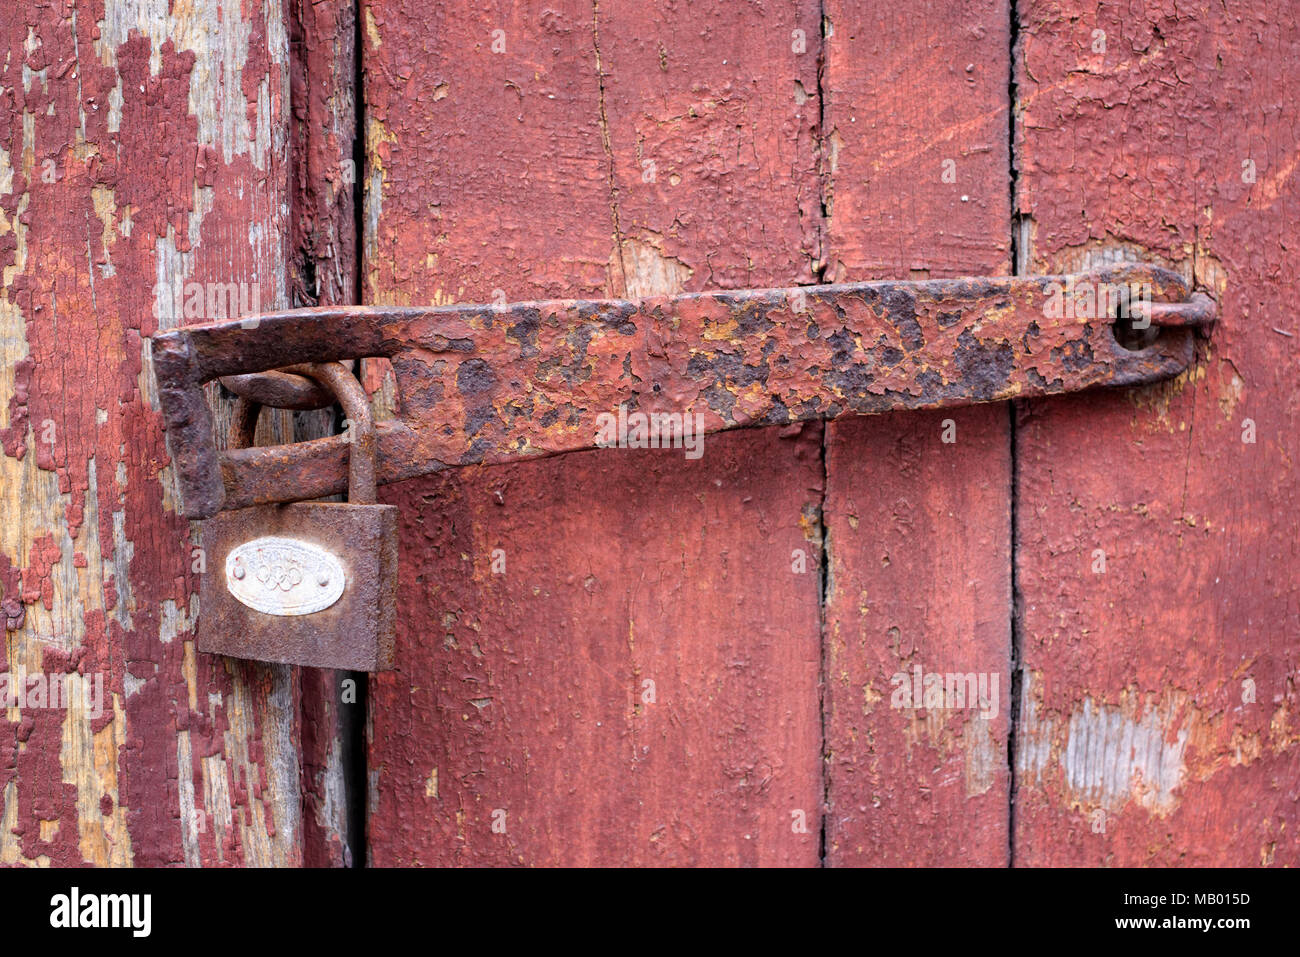 An old wooden door with a rusty lock - Stock Image